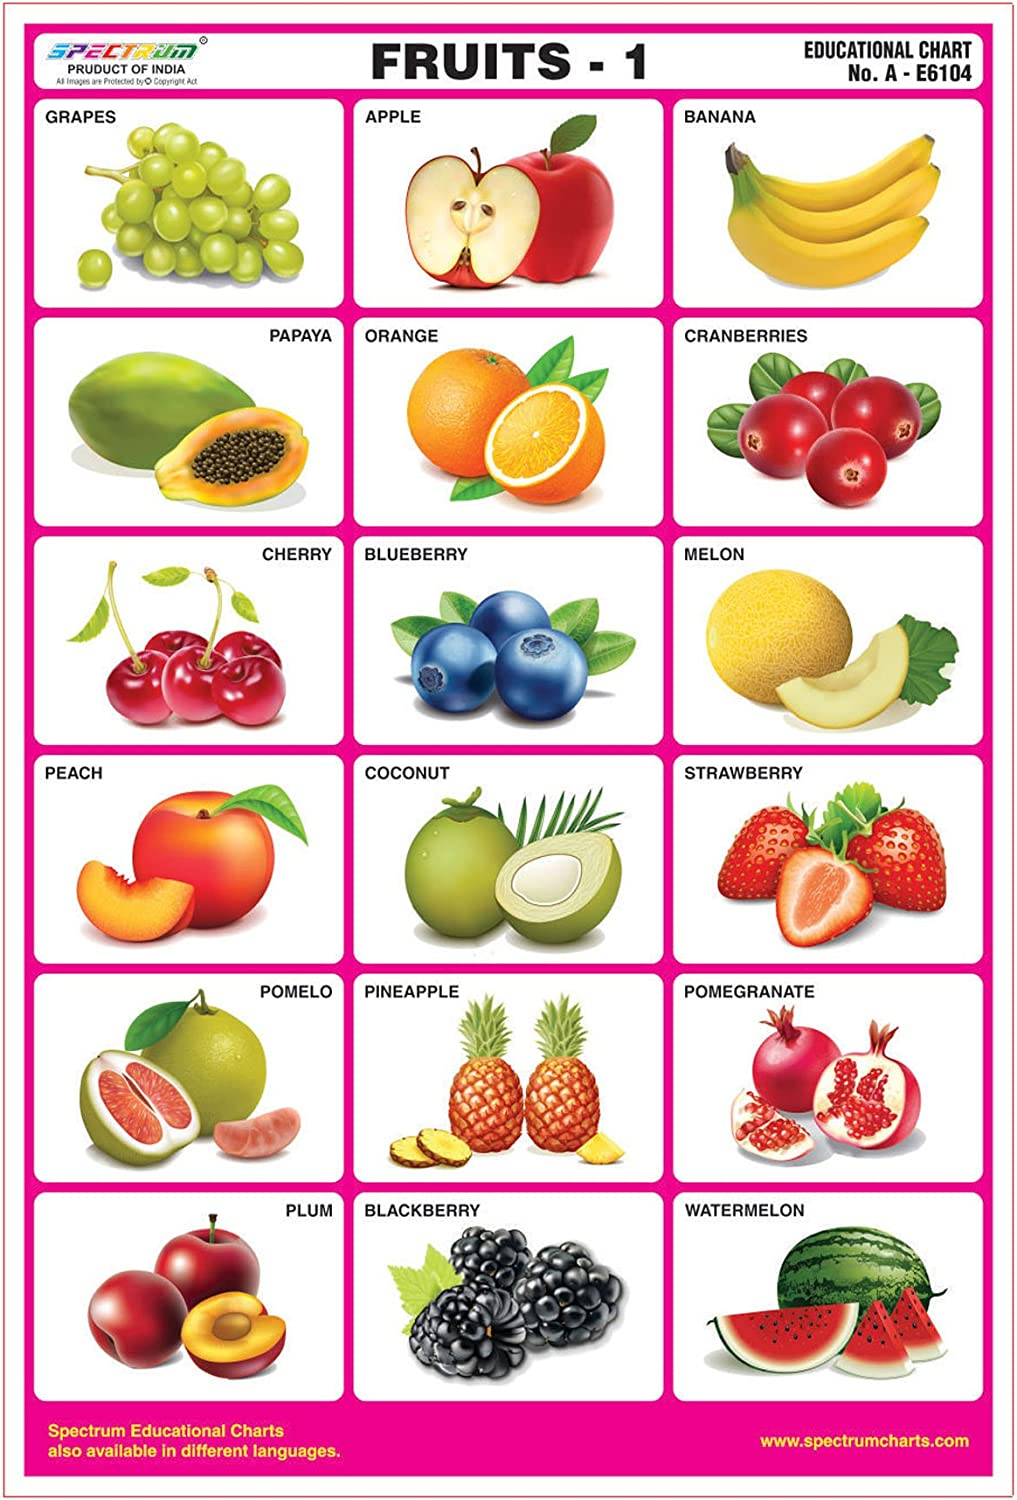 Amazon Com Spectrum Fruits 1 Pre Primary Kids Learning Educational Laminated Wall Chart Industrial Scientific